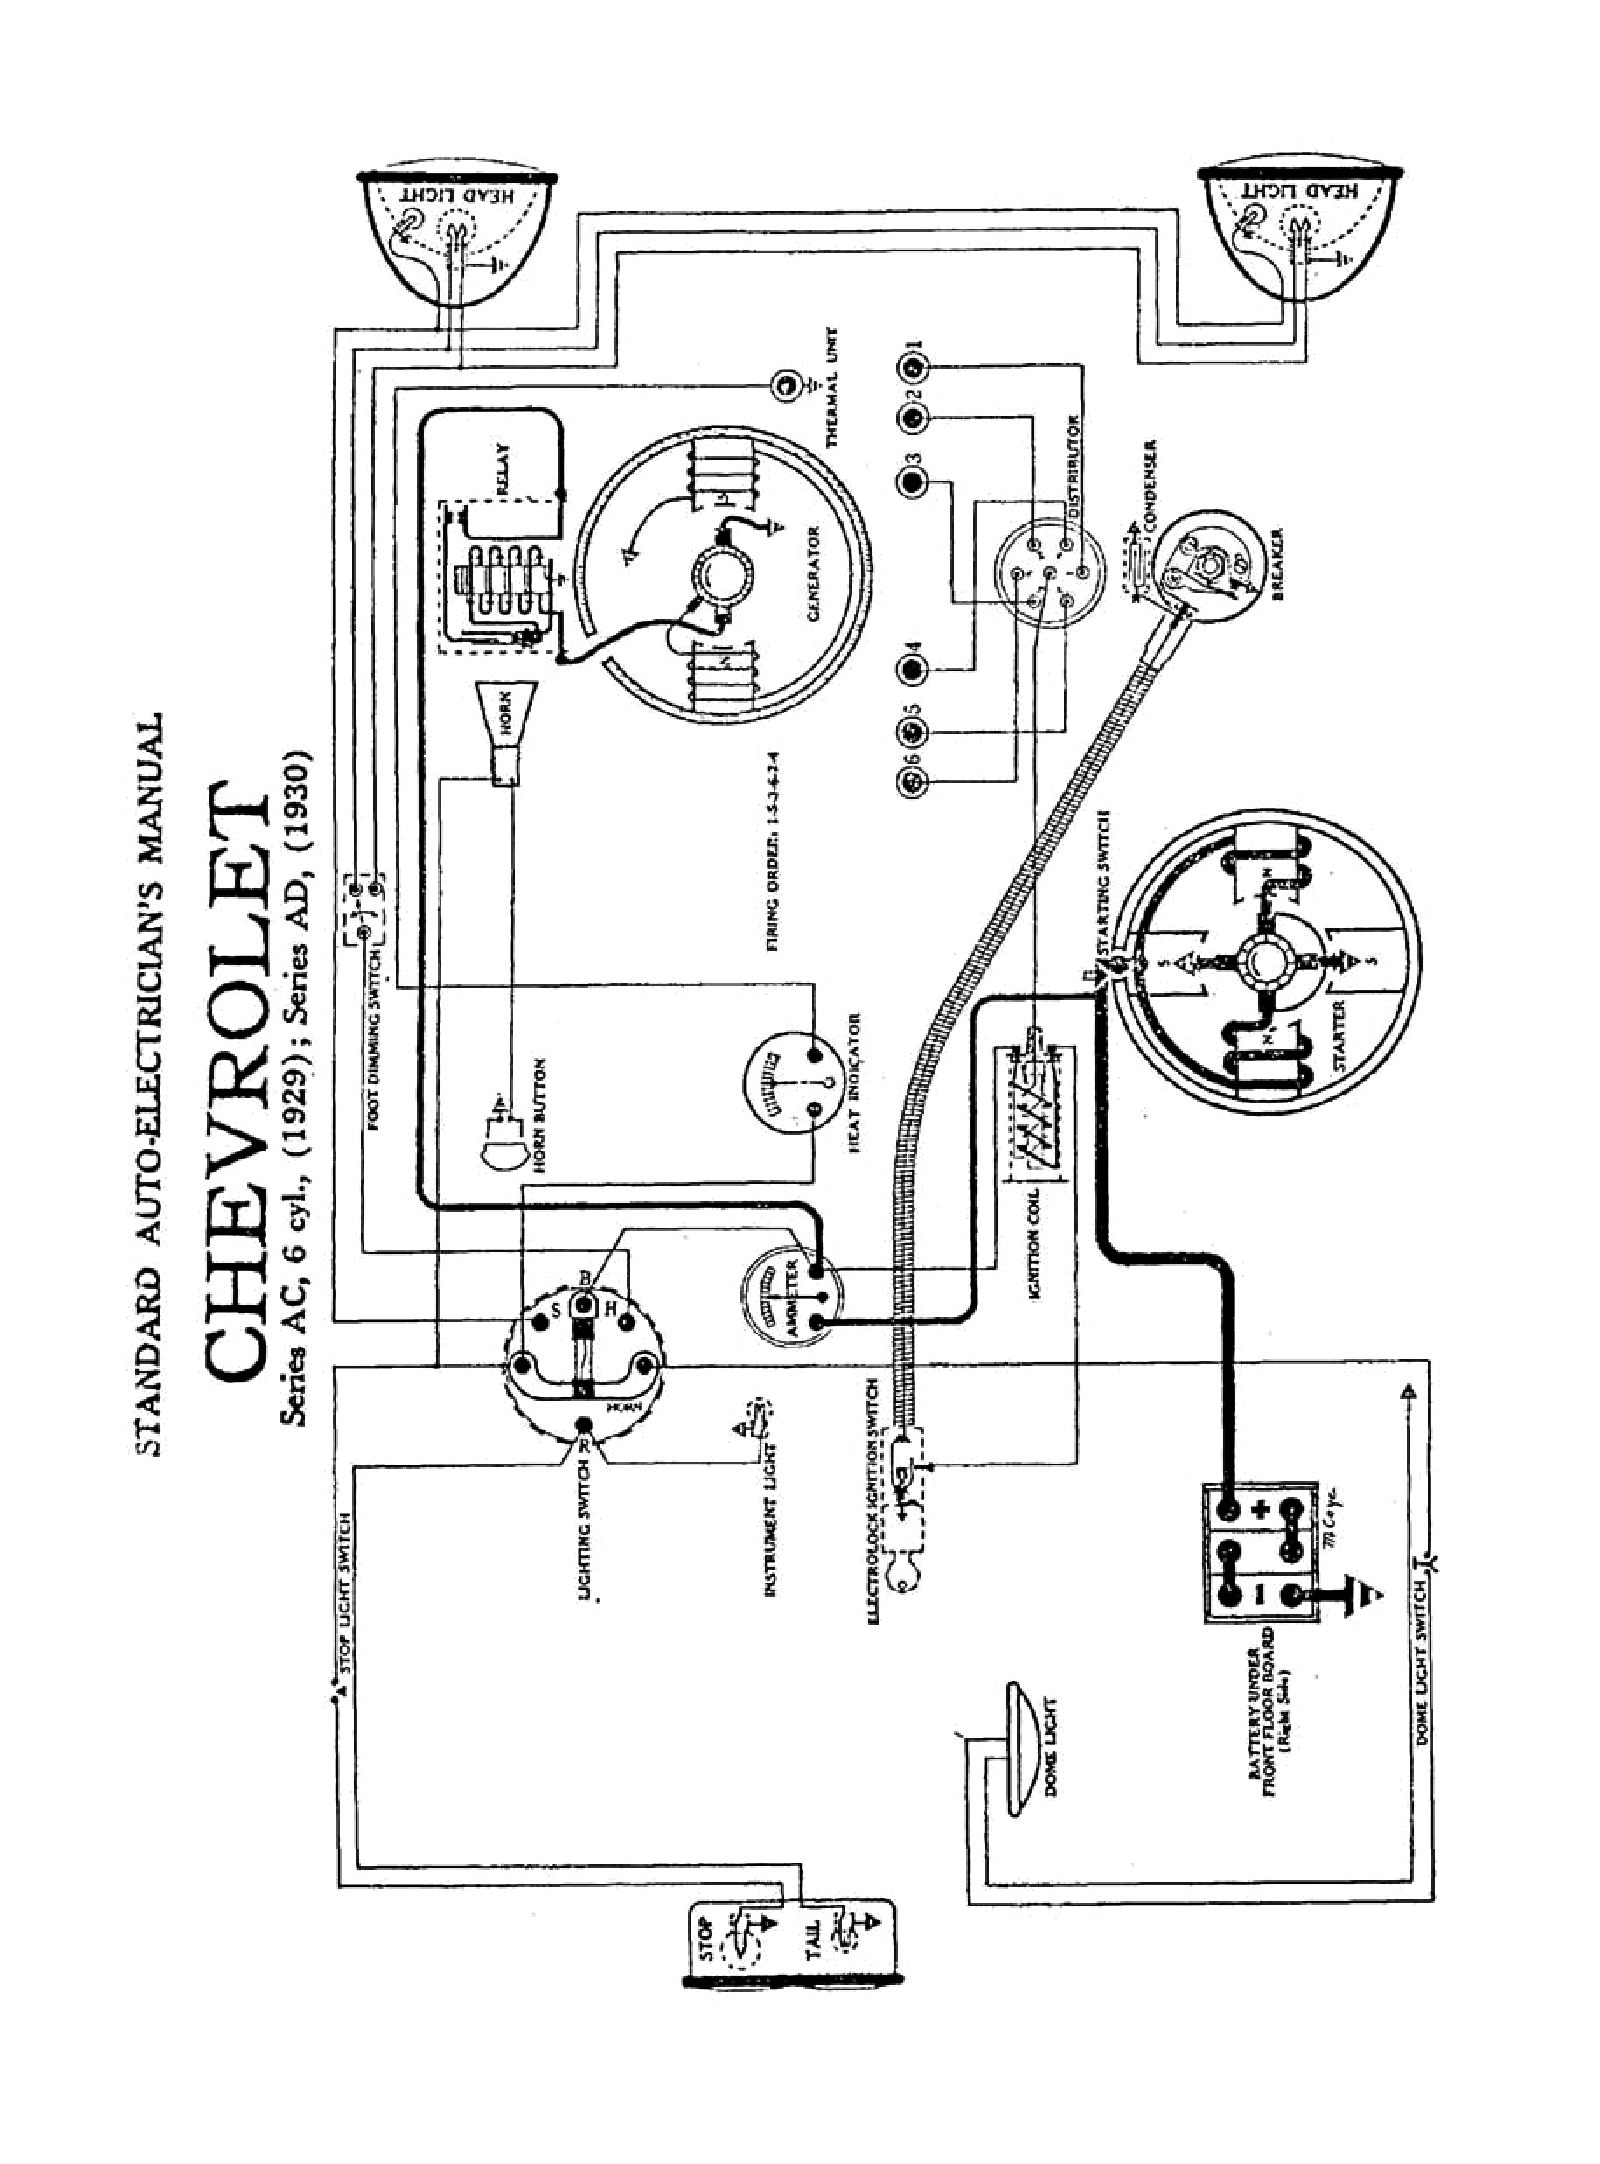 1931 Chevrolet Wiring Diagram, 1931, Get Free Image About